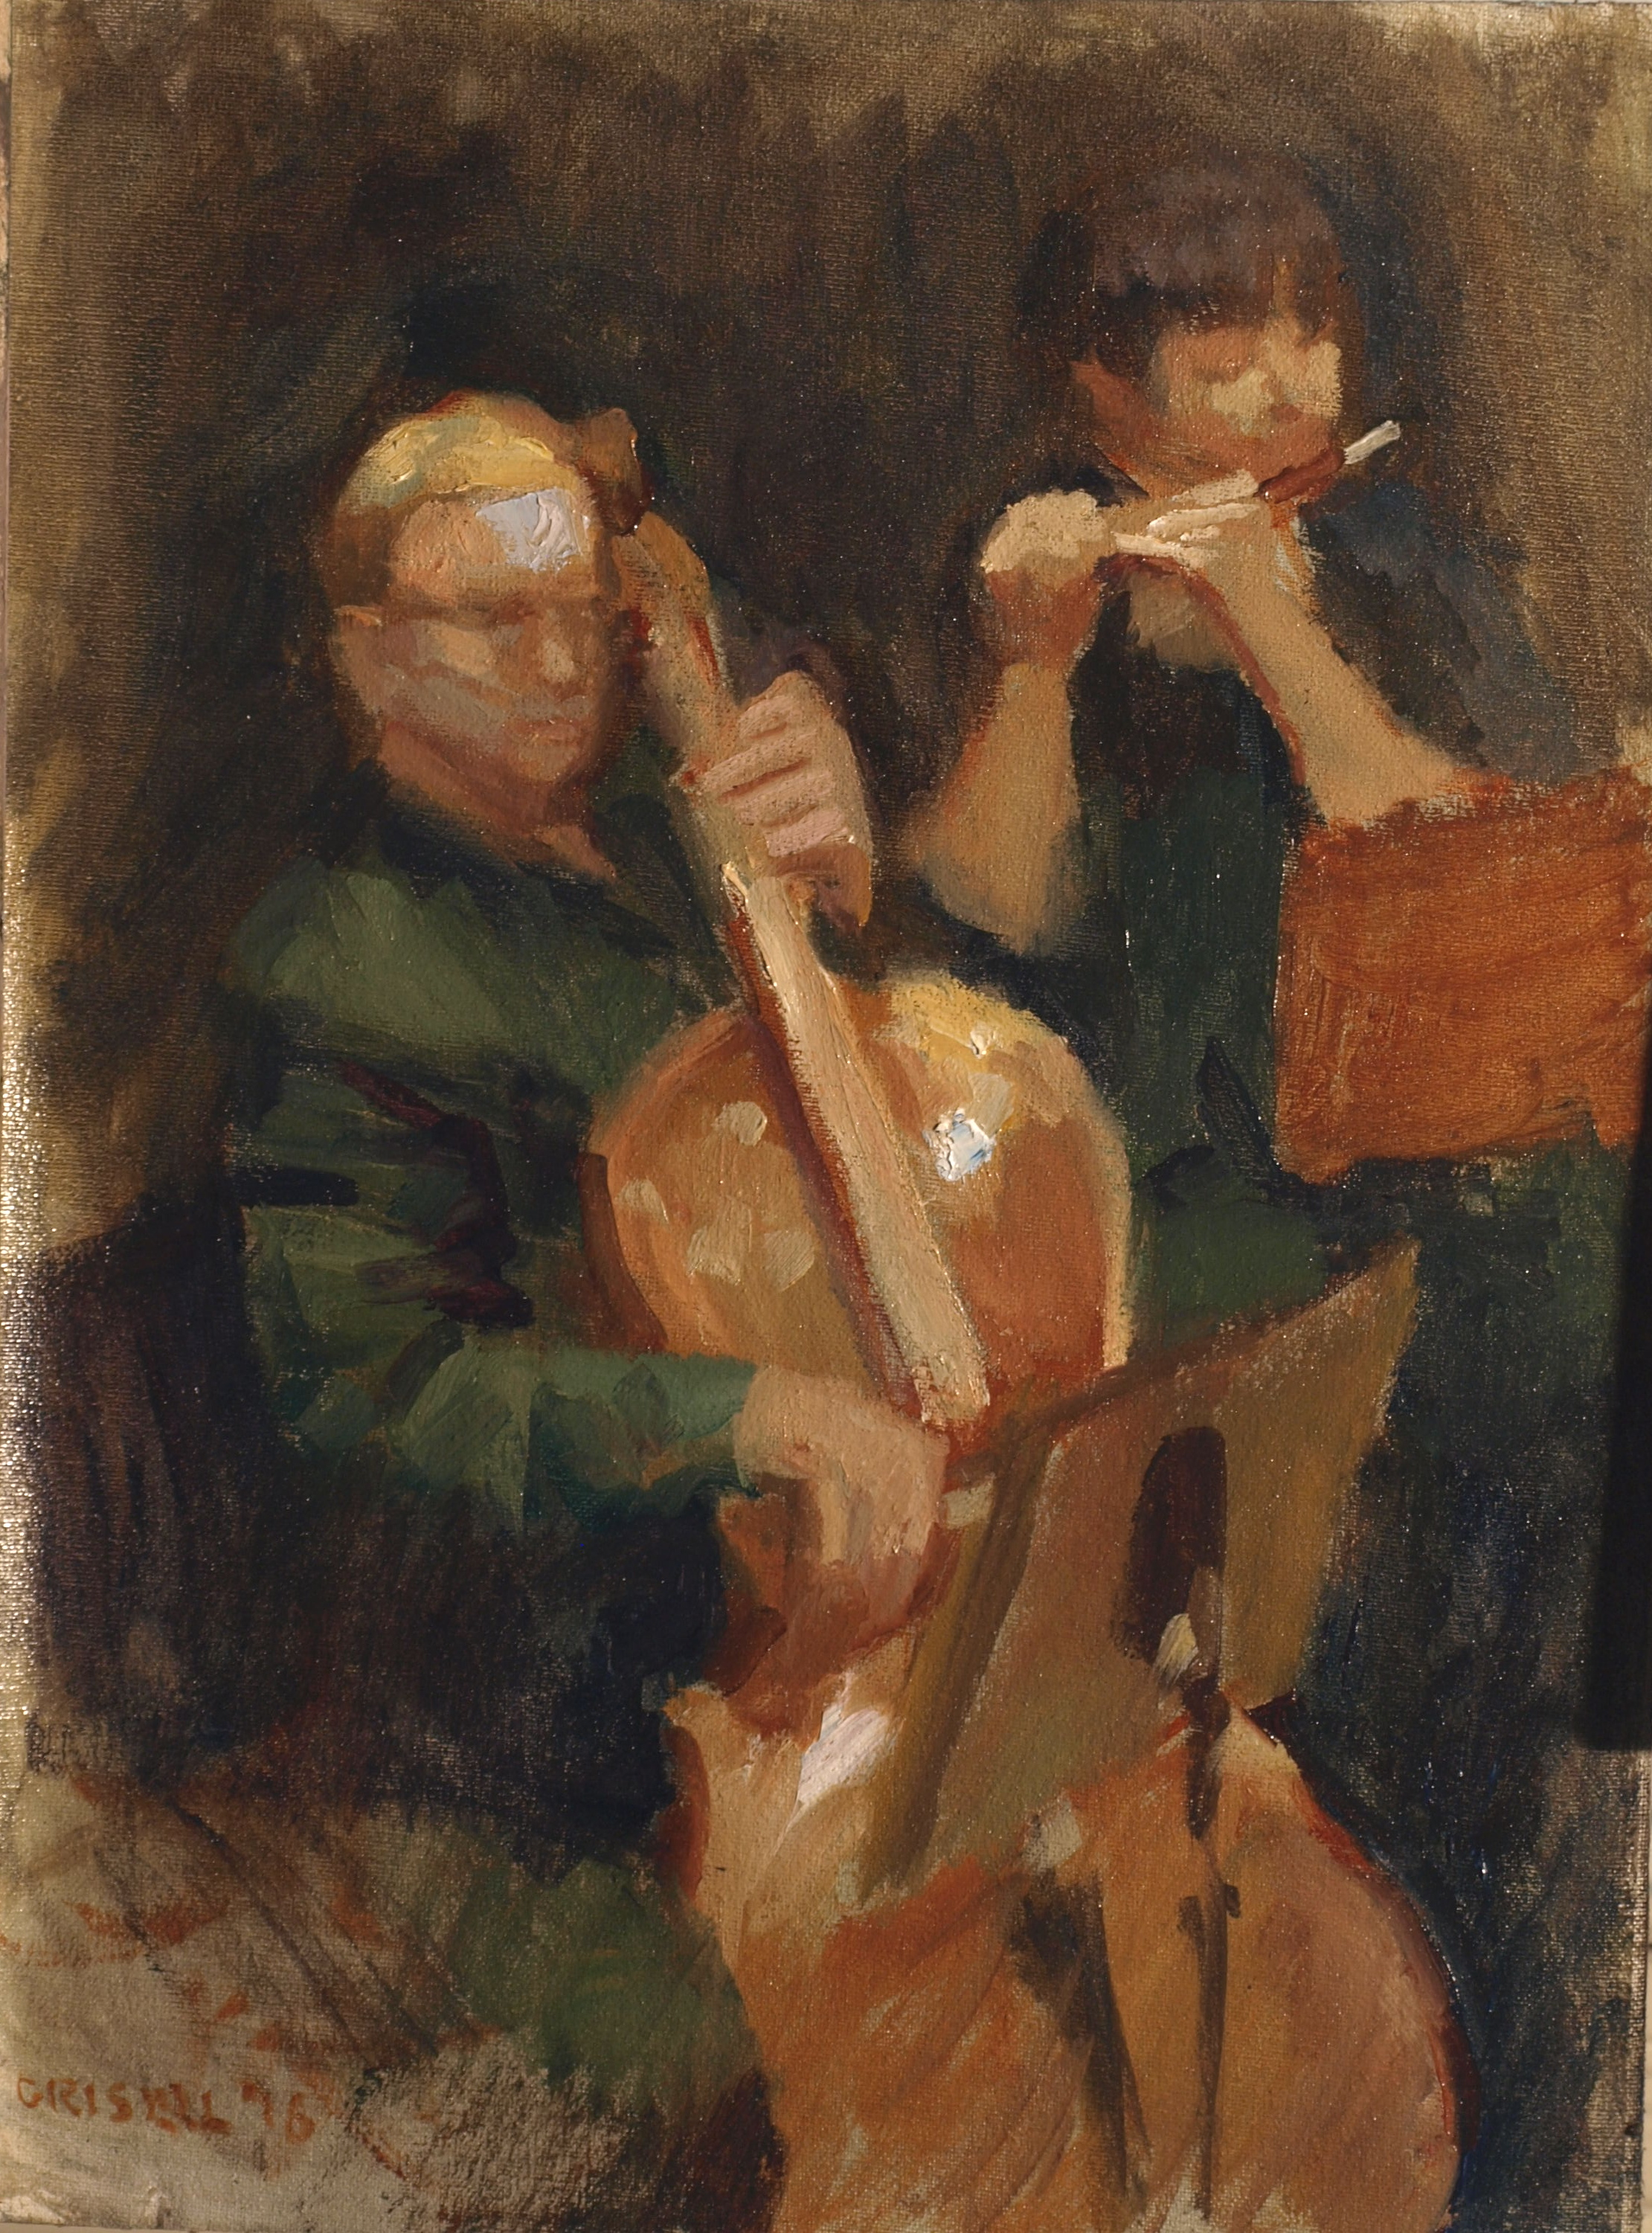 Concert, Oil on Canvas on Panel, 16 x 12 Inches, by Susan Grisell, $300